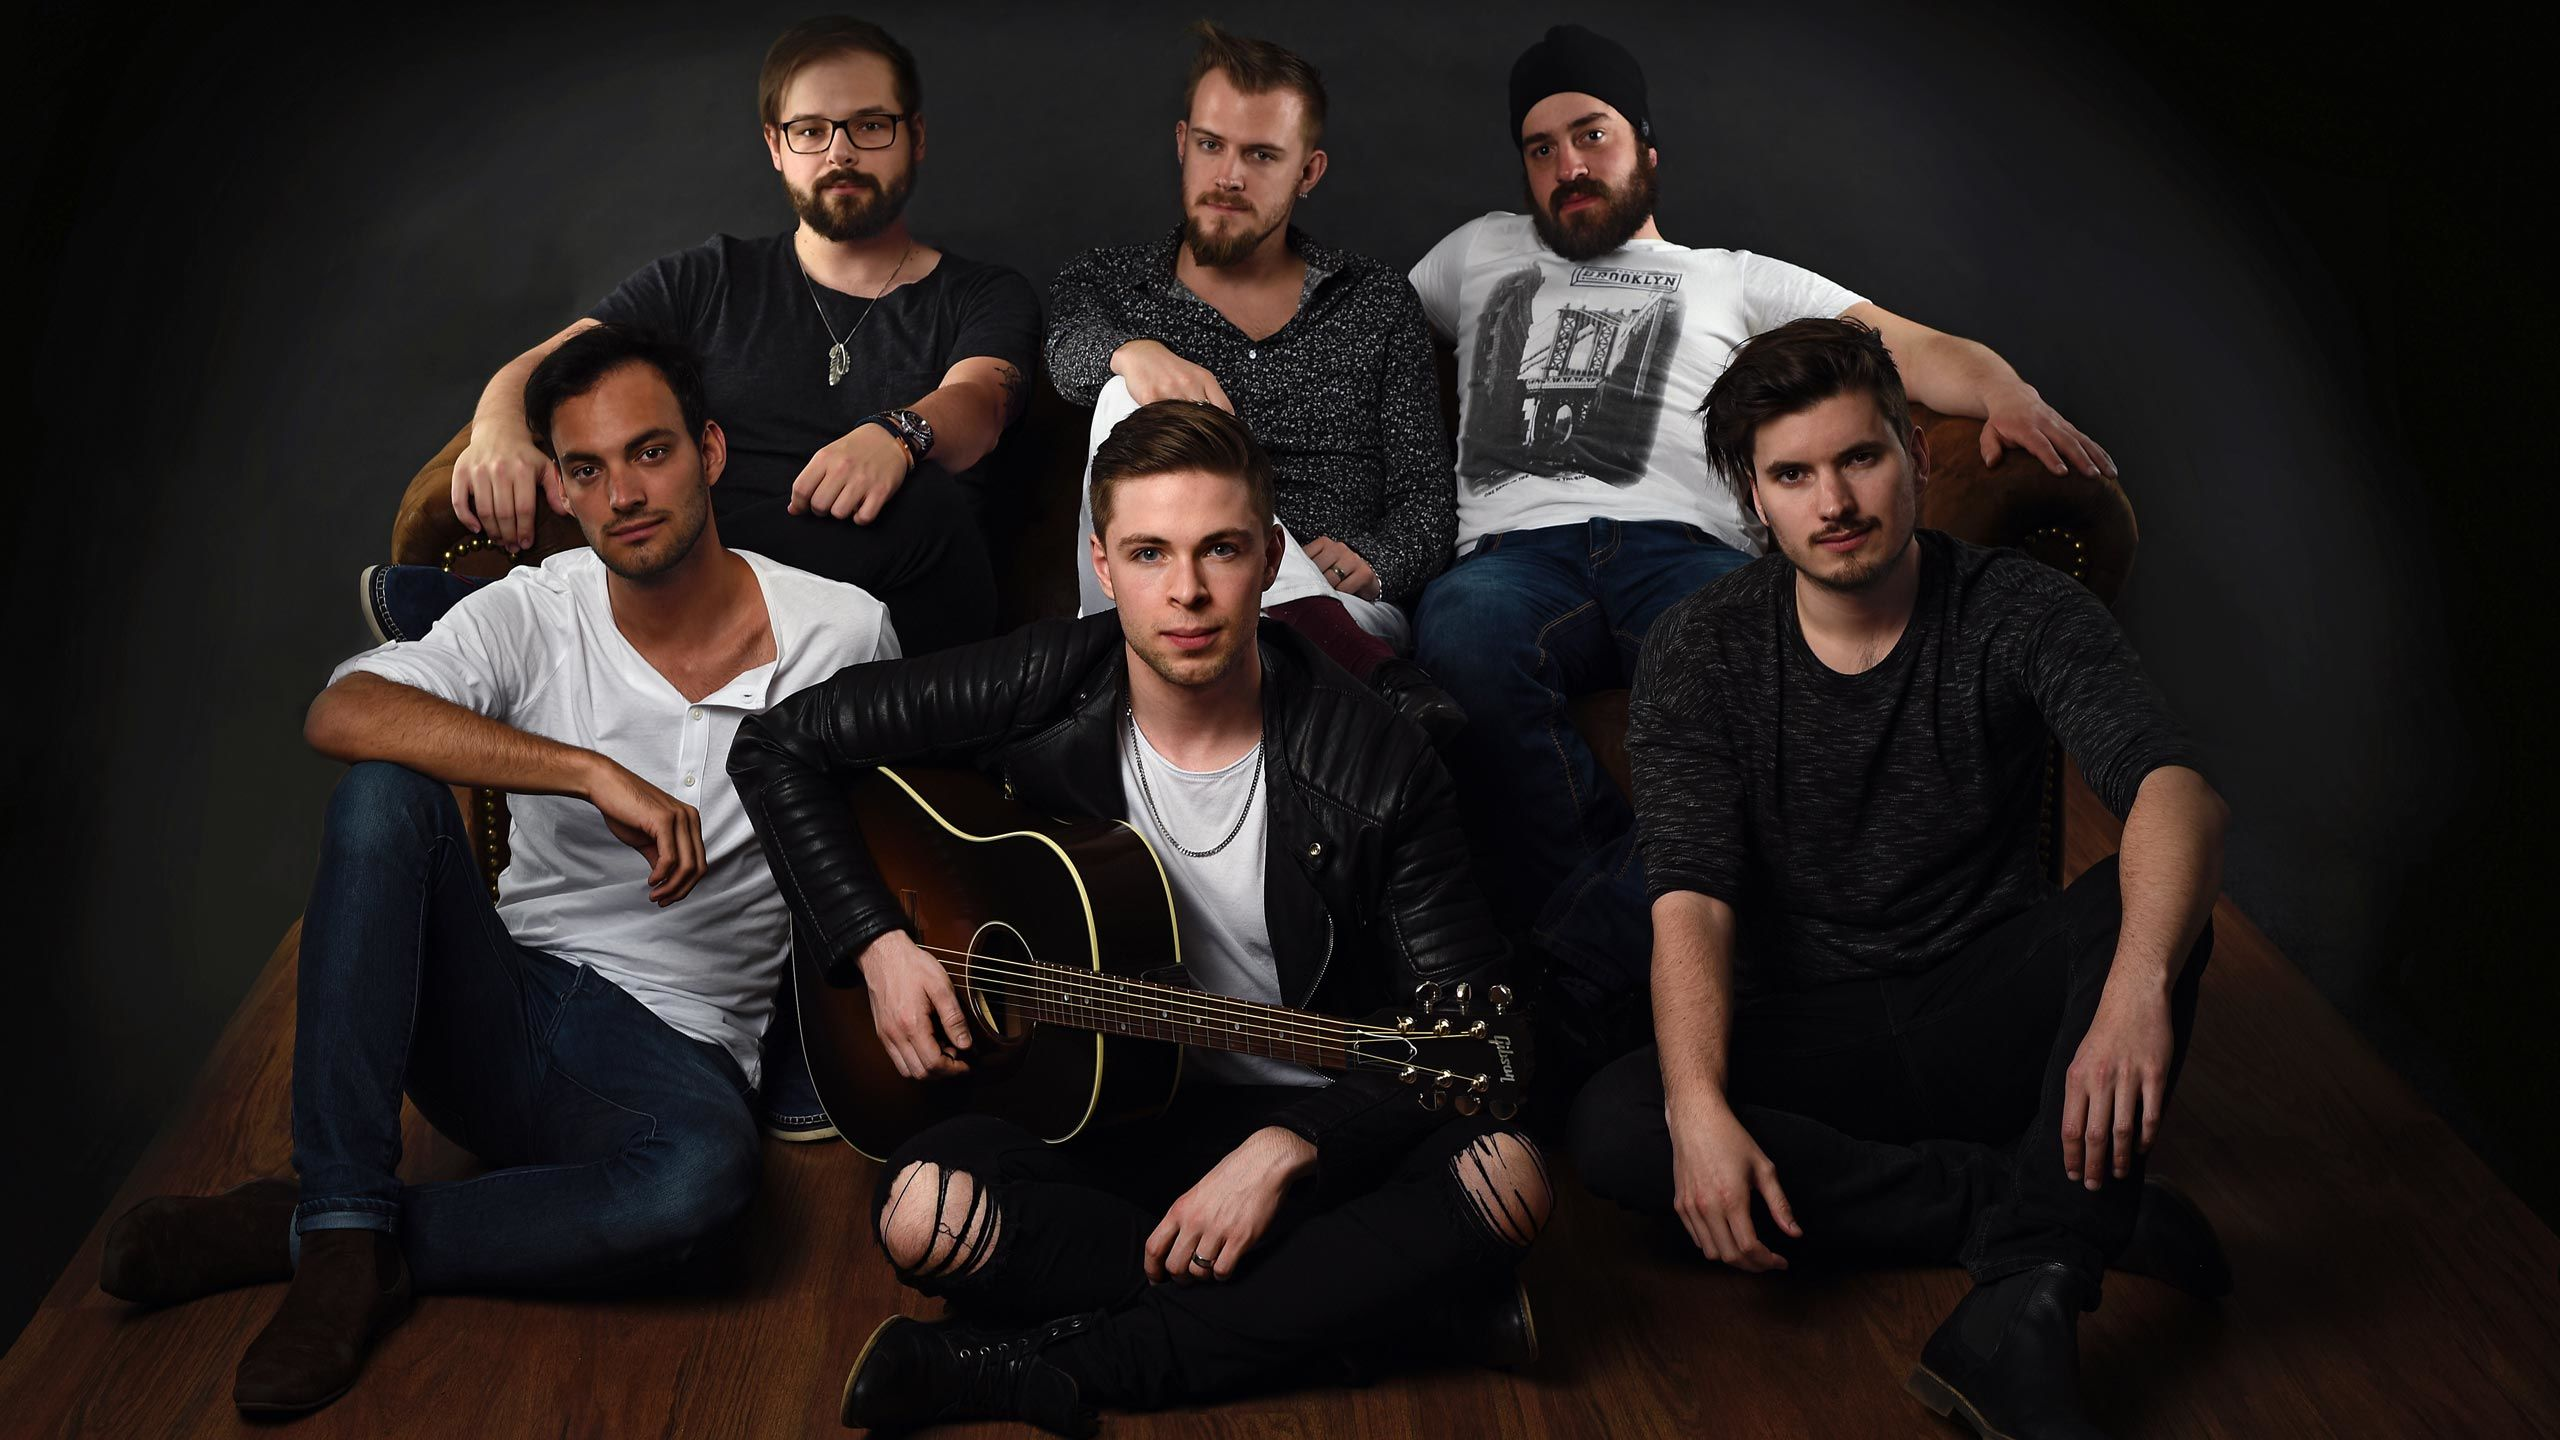 Promotional picture of Reno Gabriel's live band that he plays shows with, in a photo studio, band sitting on a couch, background is dark